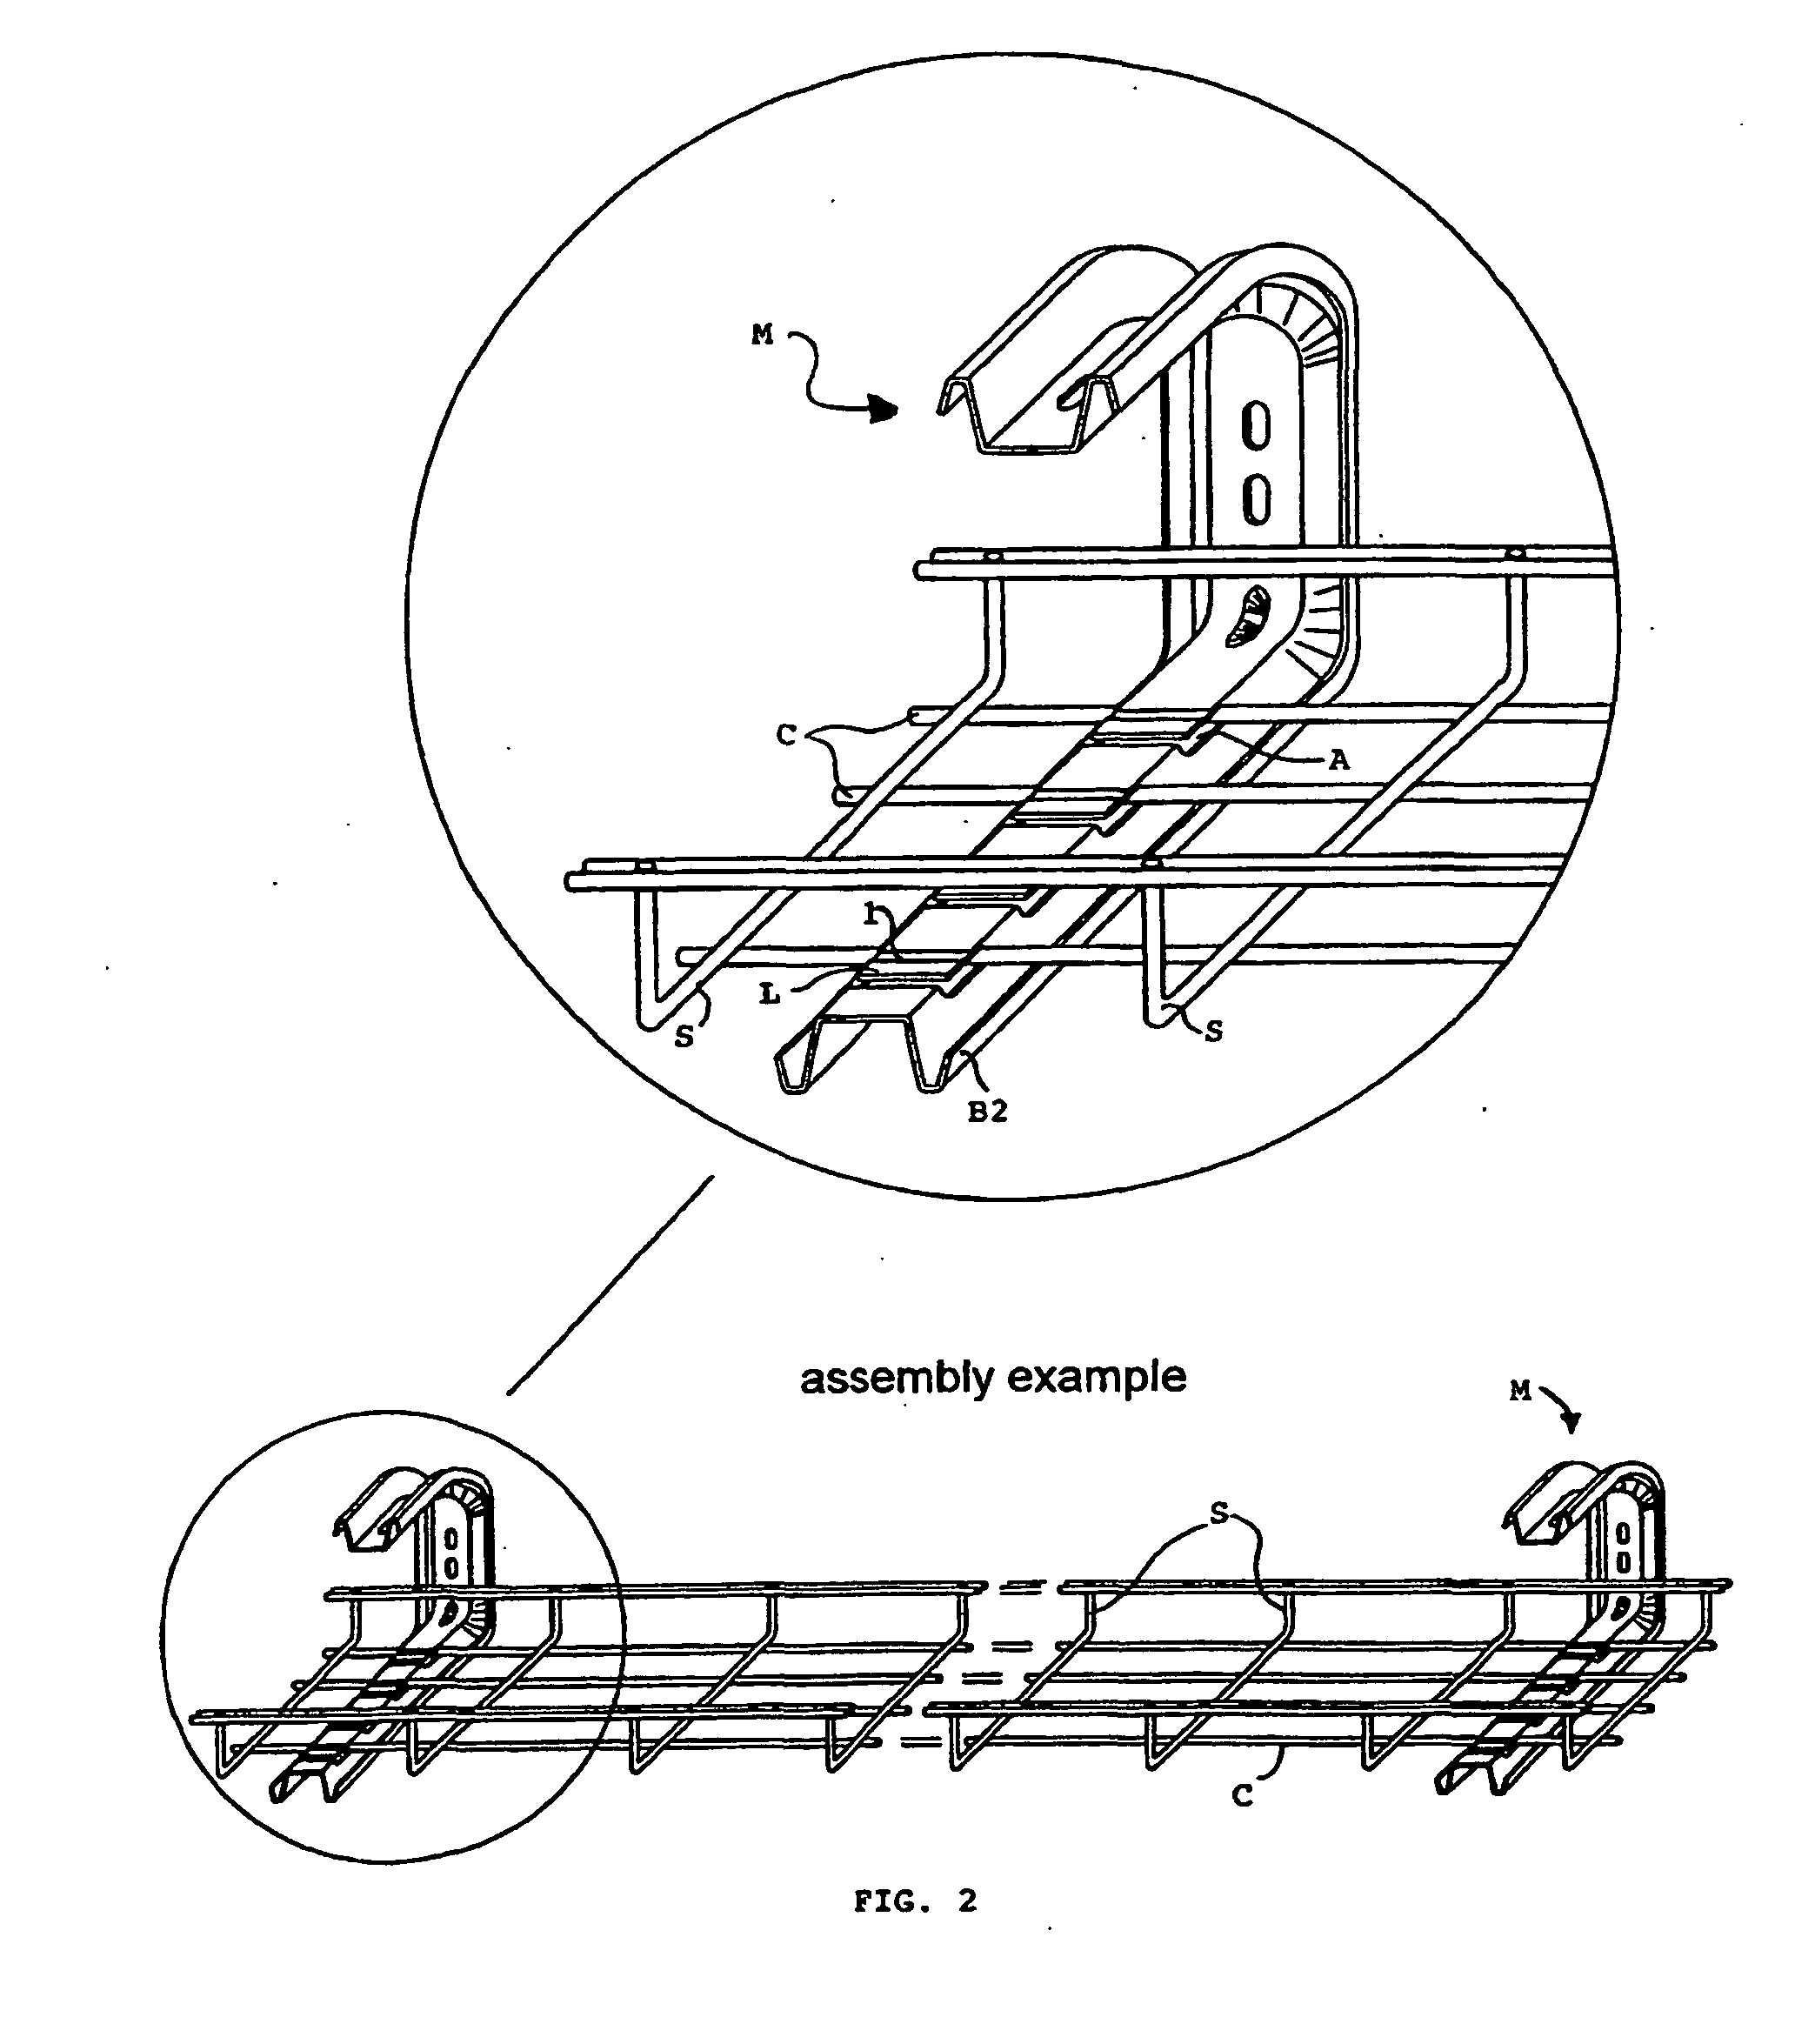 00160001 doolittle trailer wiring diagram on doolittle images free,Common Trailer Wiring